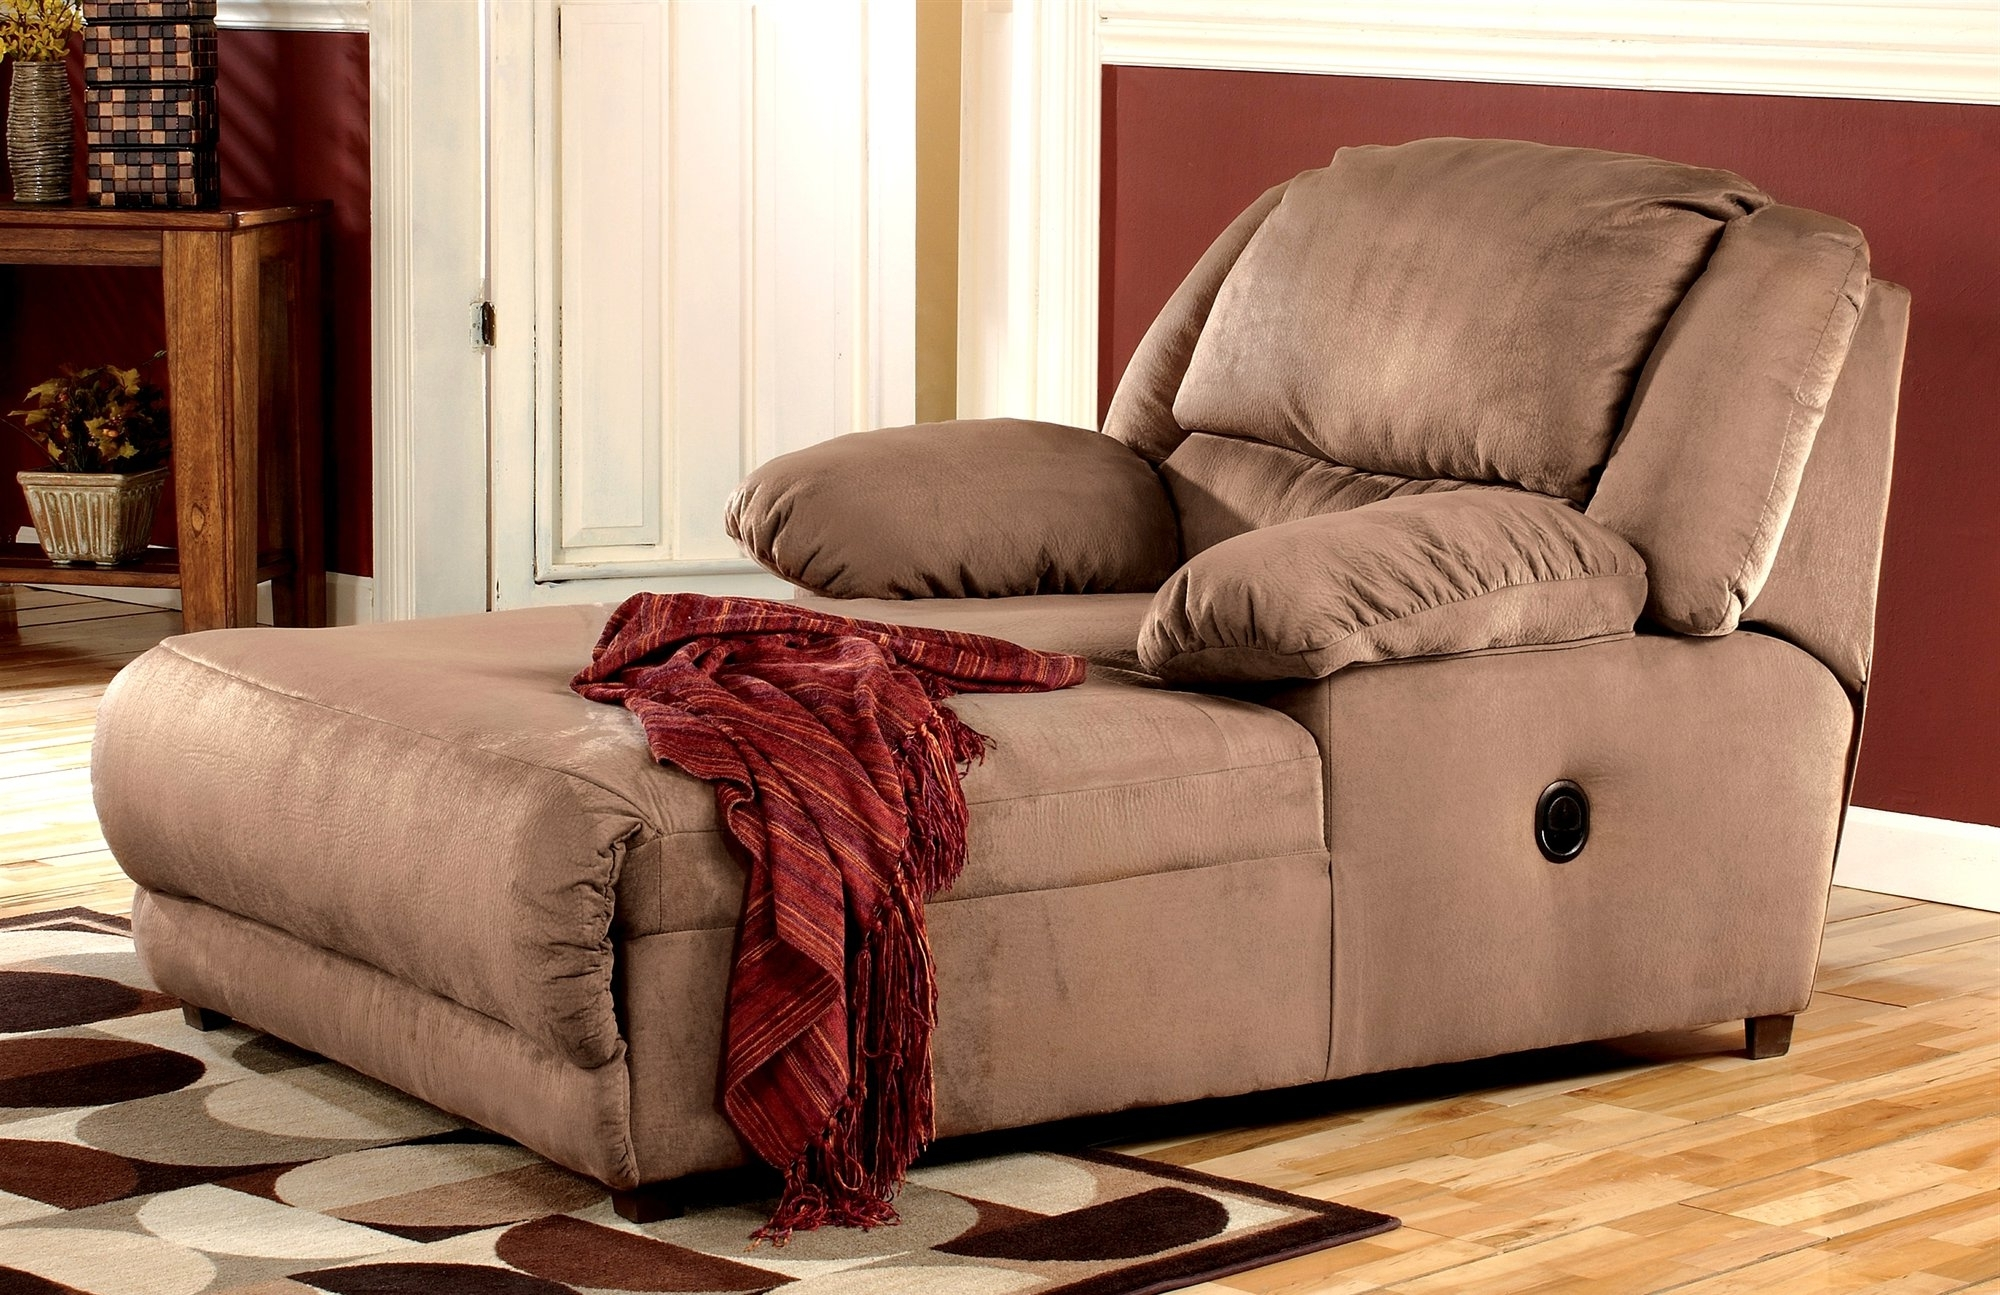 Most Recently Released Reclining Chaise Lounges For Furniture: Fascinating Interior Indoor Chaise Lounge Chairs With (View 6 of 15)